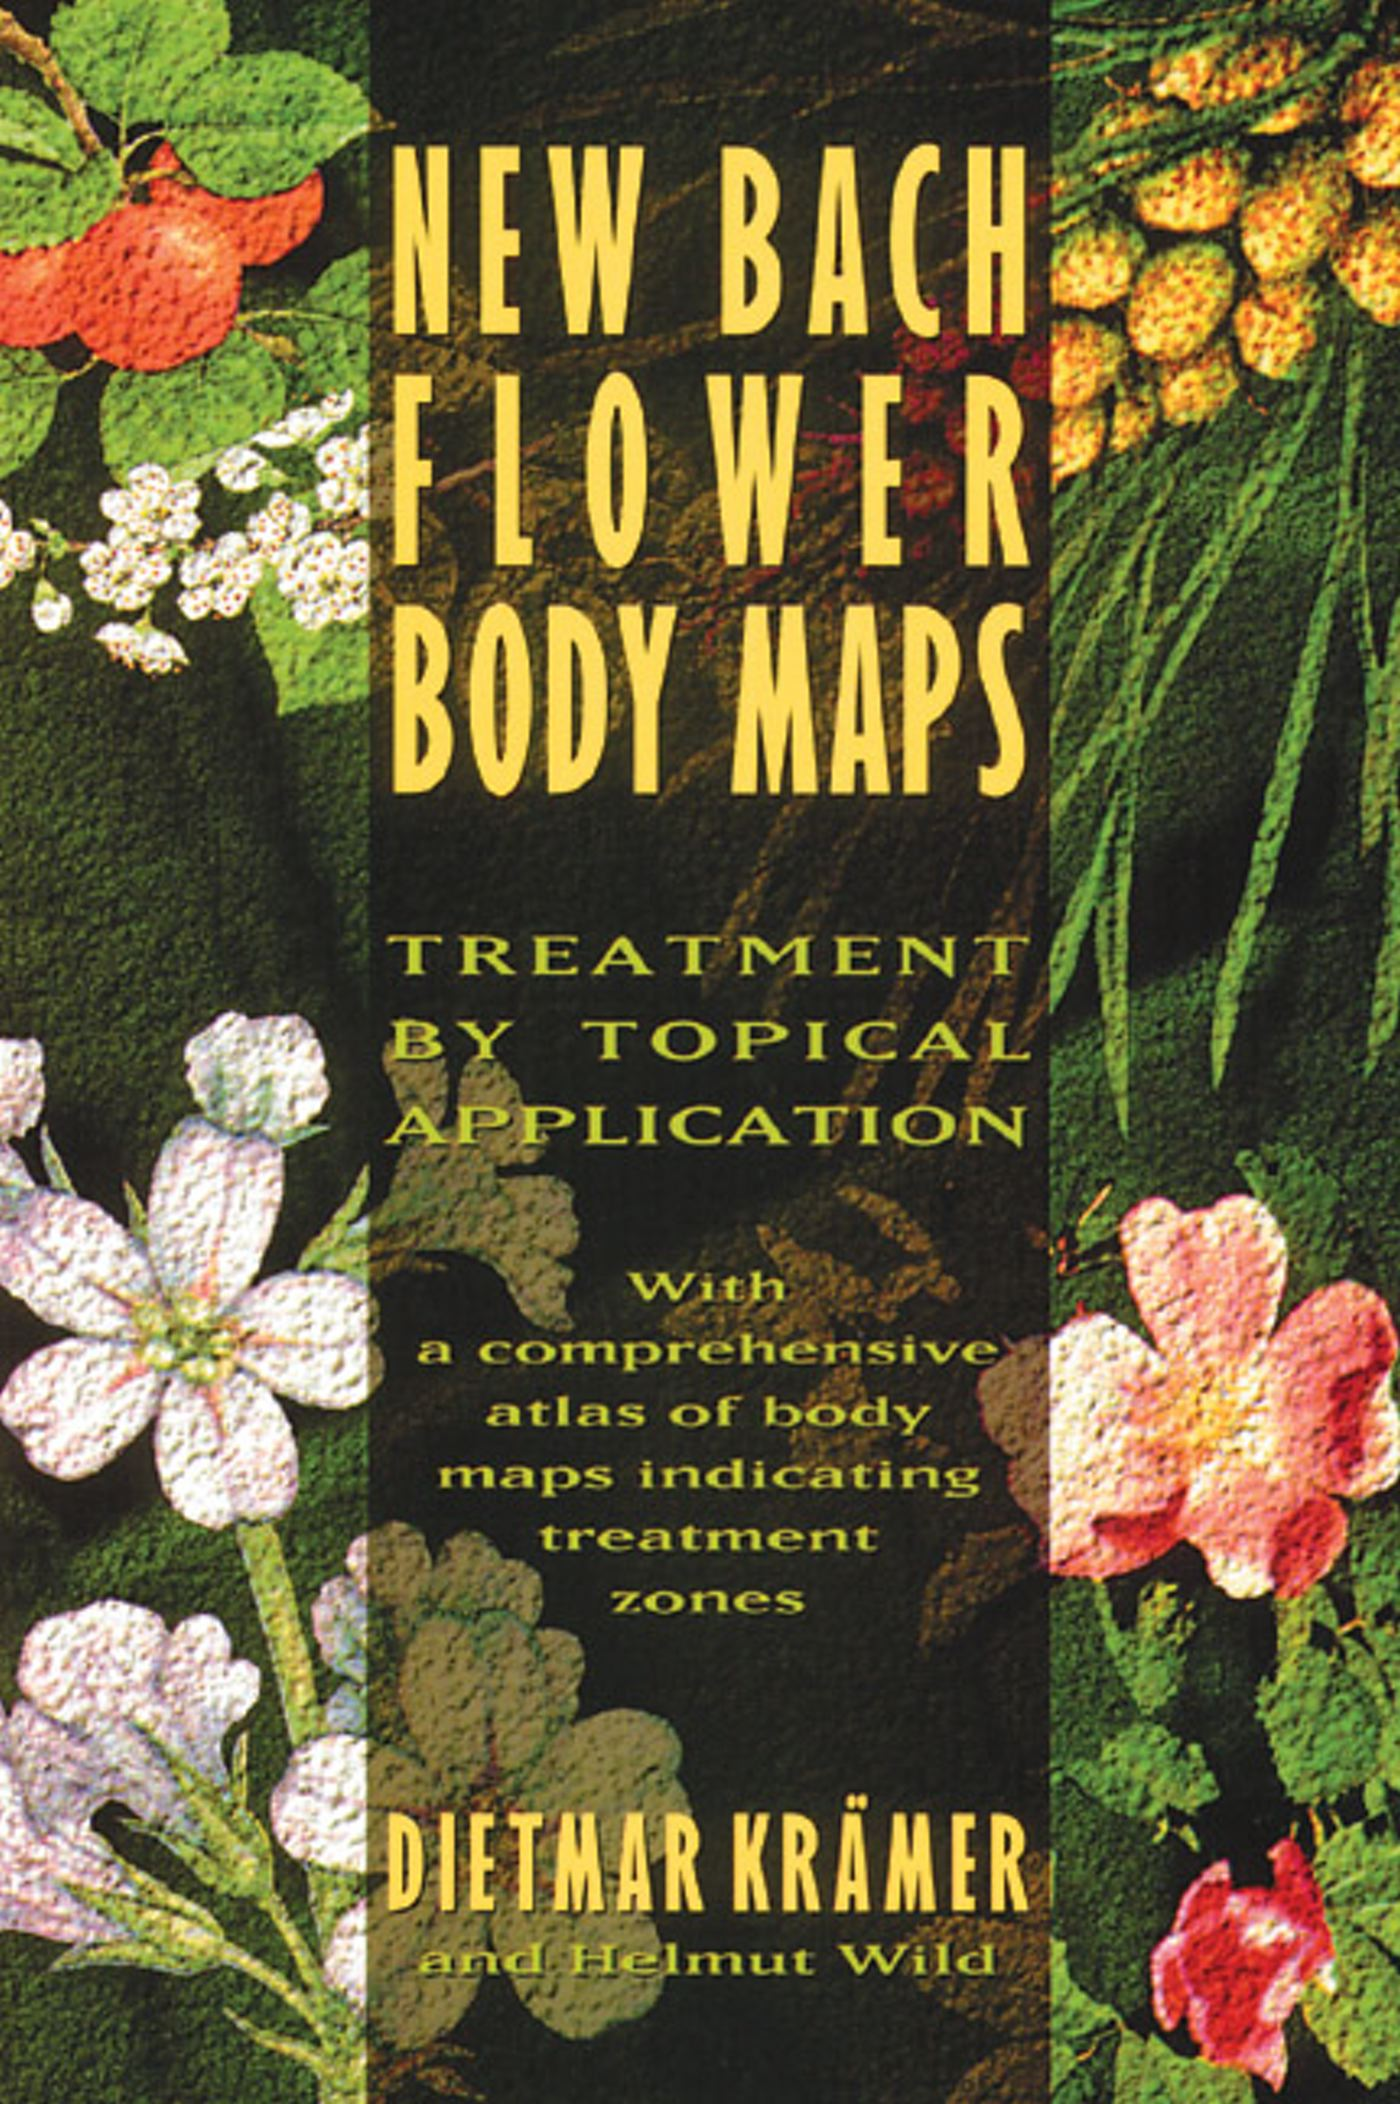 New-bach-flower-body-maps-9780892815319_hr